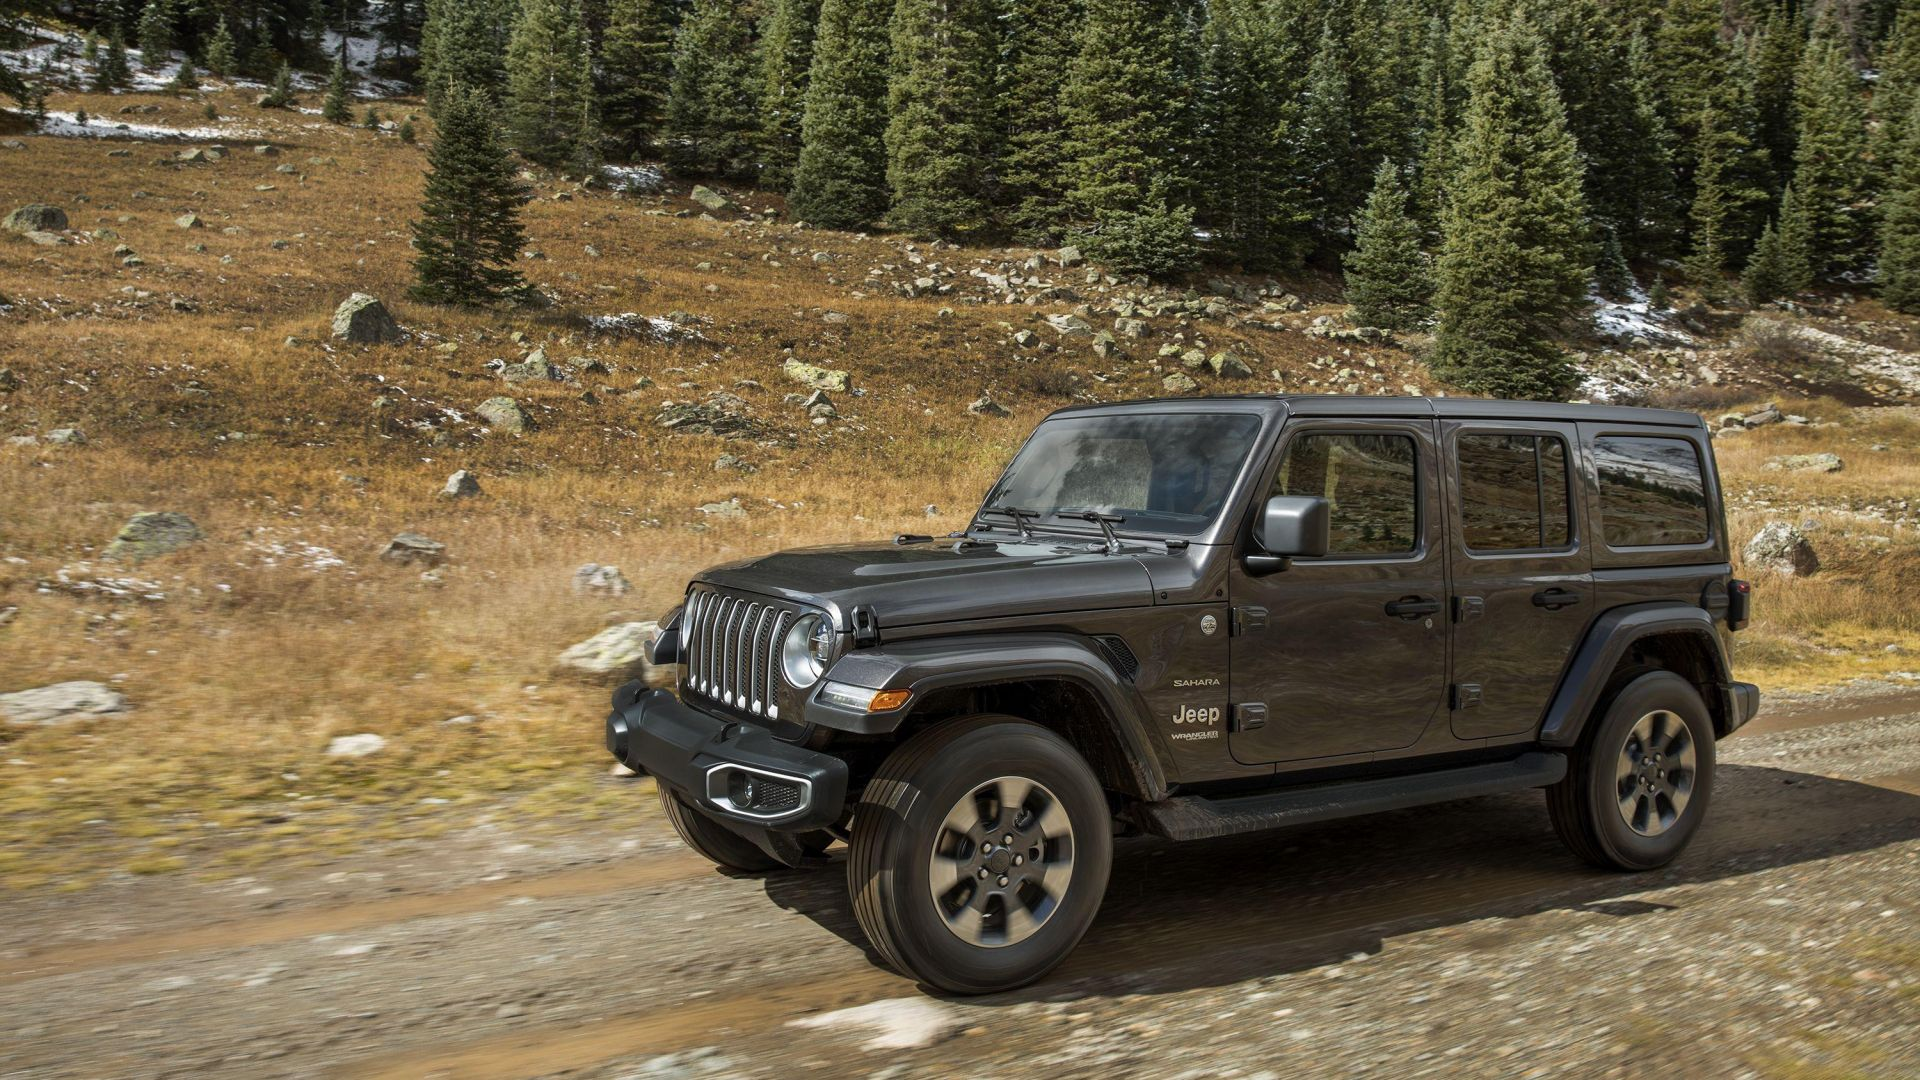 Jeep Wrangler, SUV, 2019 Cars, 4K (horizontal)